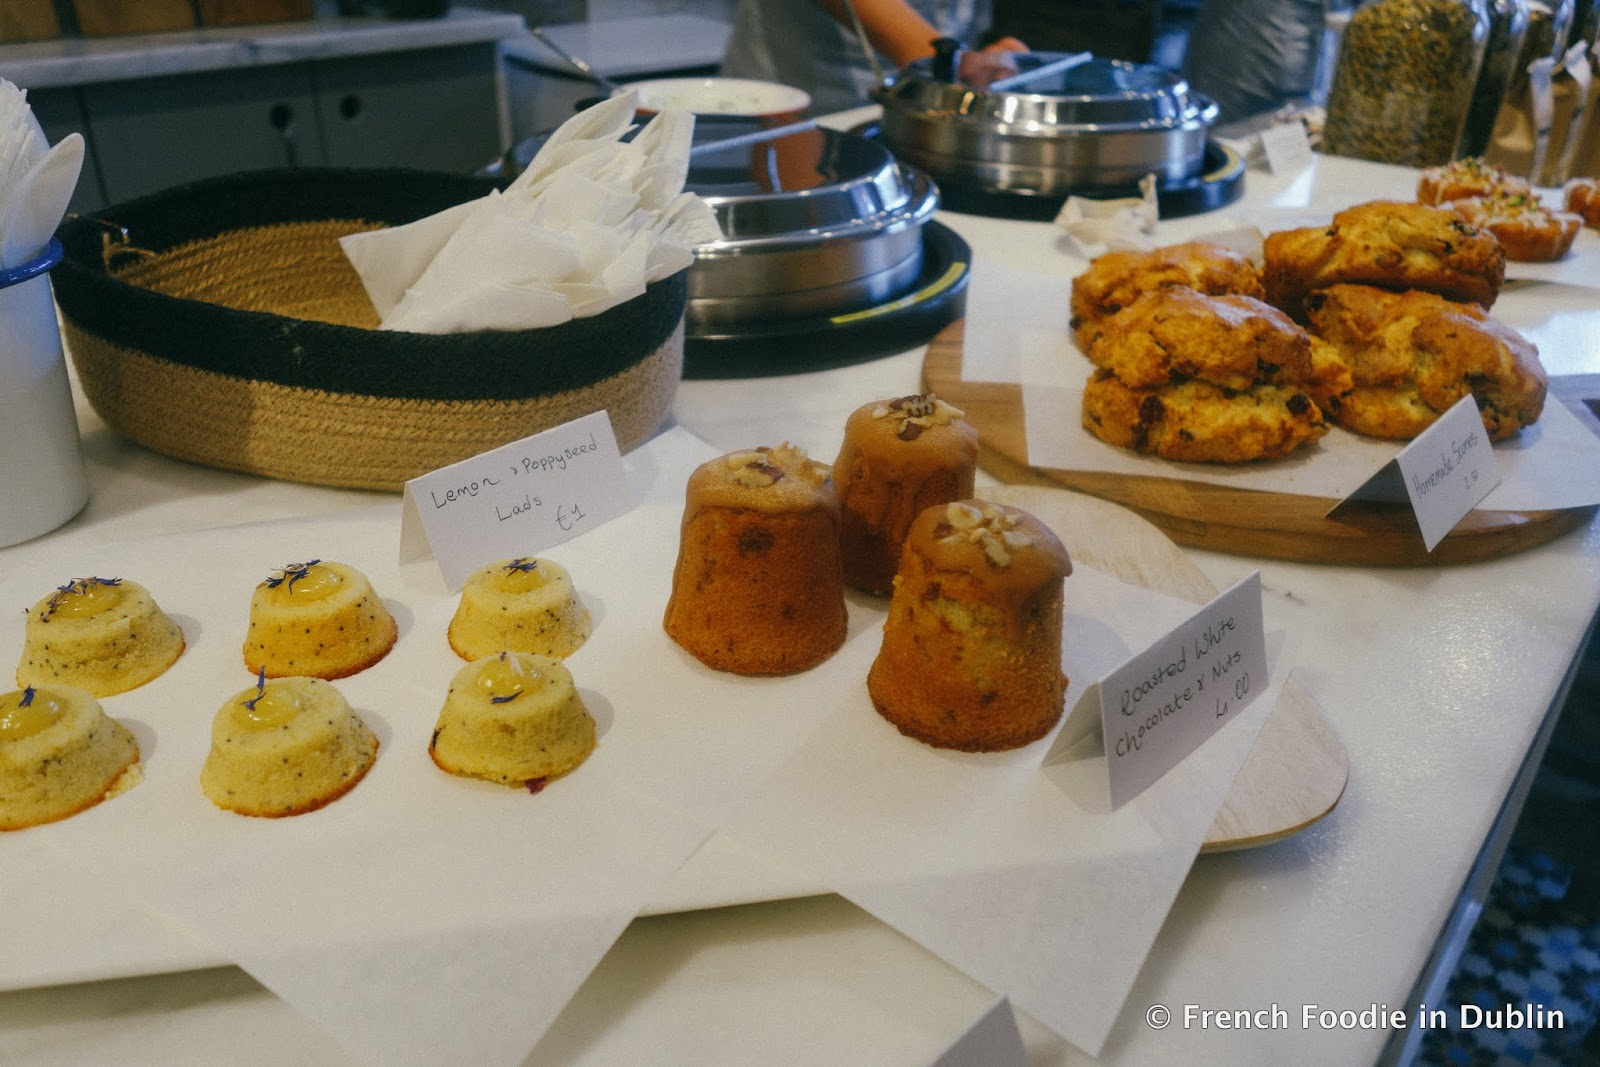 The Most Stylish Deli In Dublin Industry French Foodie